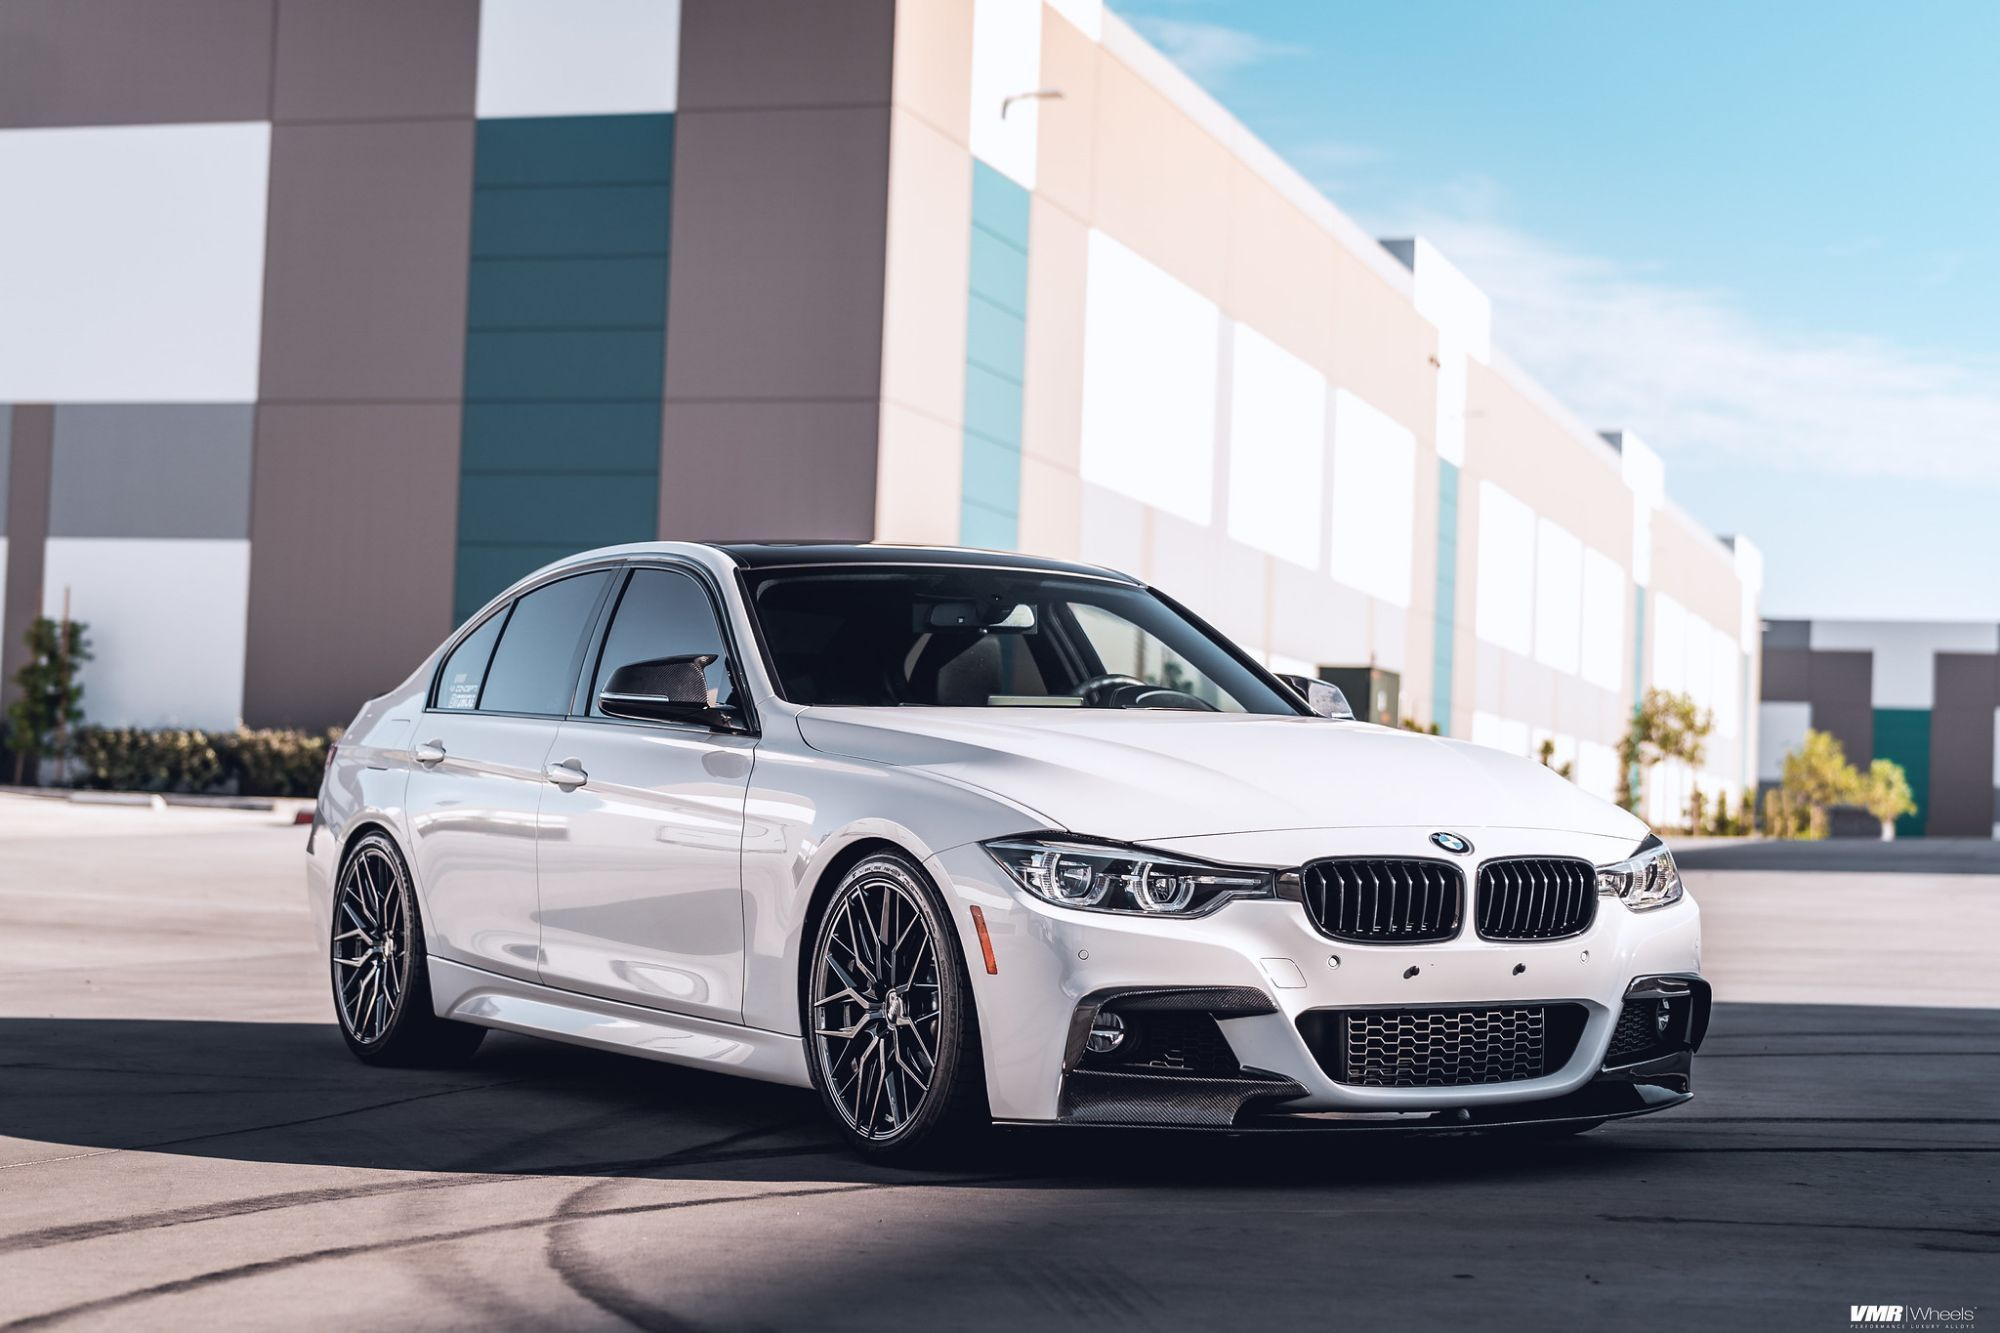 Aftermarket Frontbmw Series Wheels White Wheel Front 340i With V802 Bmw F30 Vmr 3bmw 3 Series 340i F30 White With Vmr In 2020 Bmw 3 Series Bmw Bmw White